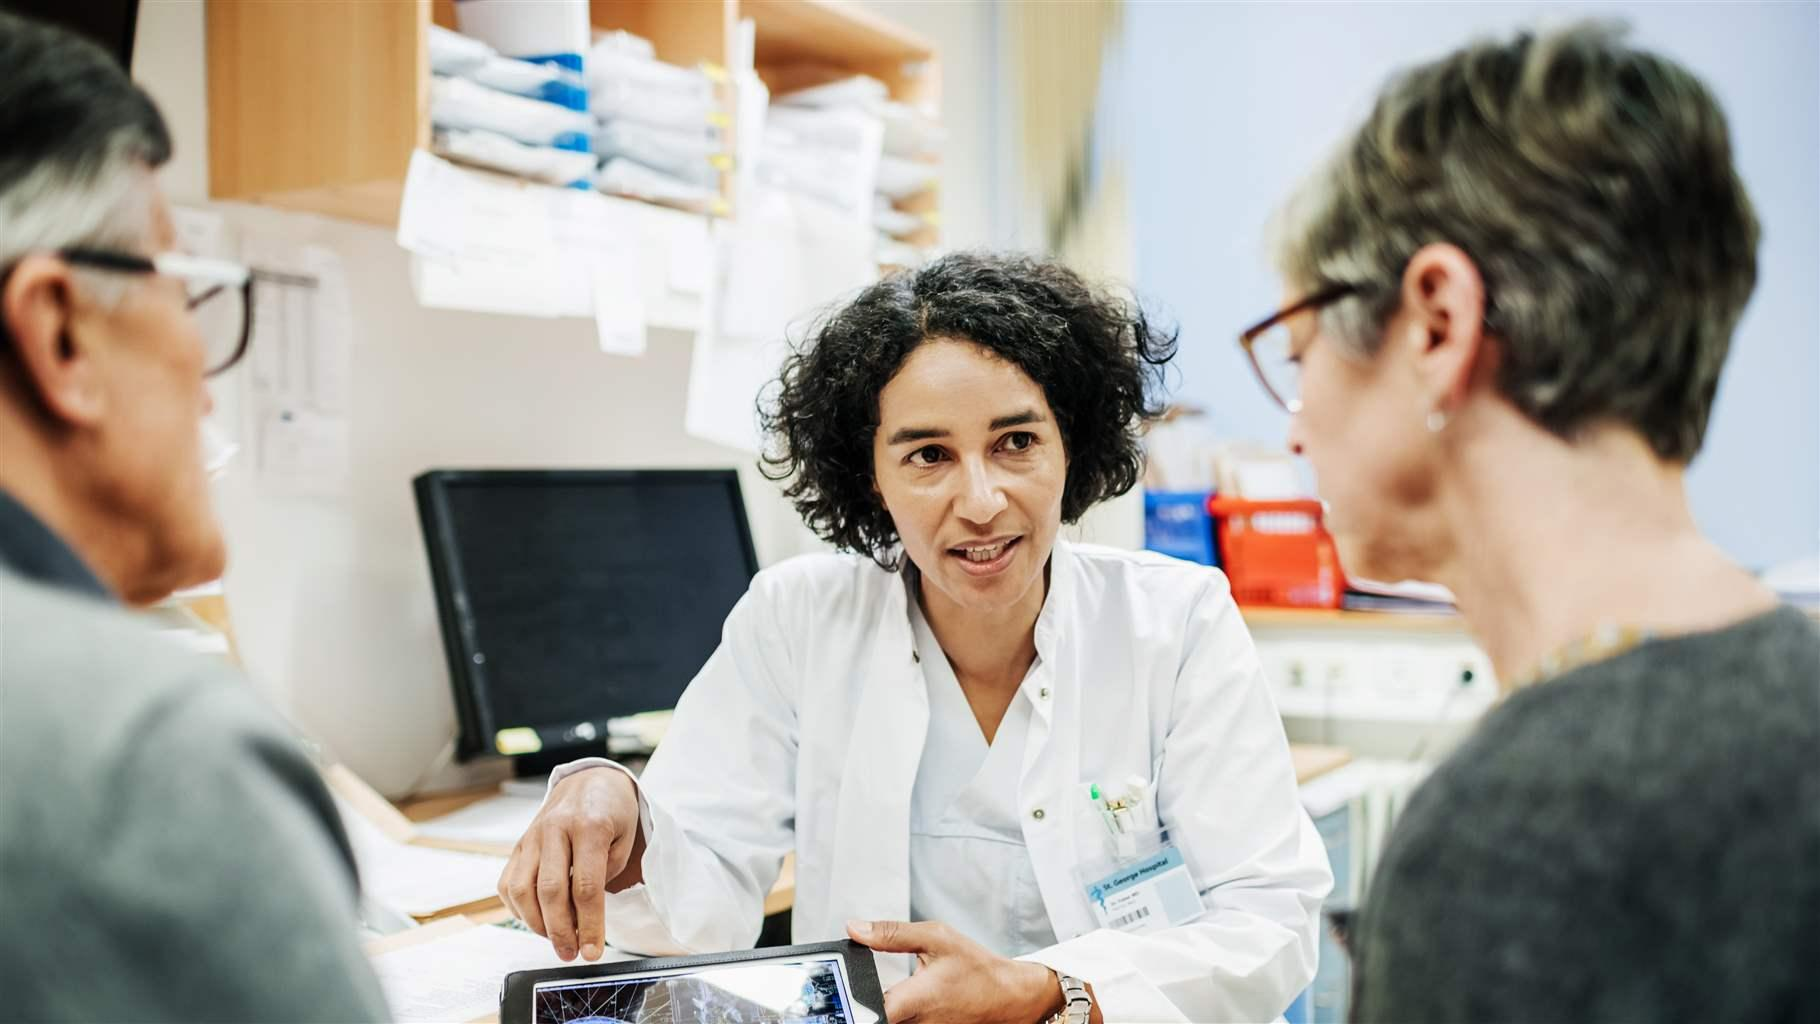 Effective Reporting Could Improve Safe Use of Electronic Health Records  The Pew Charitable Trusts